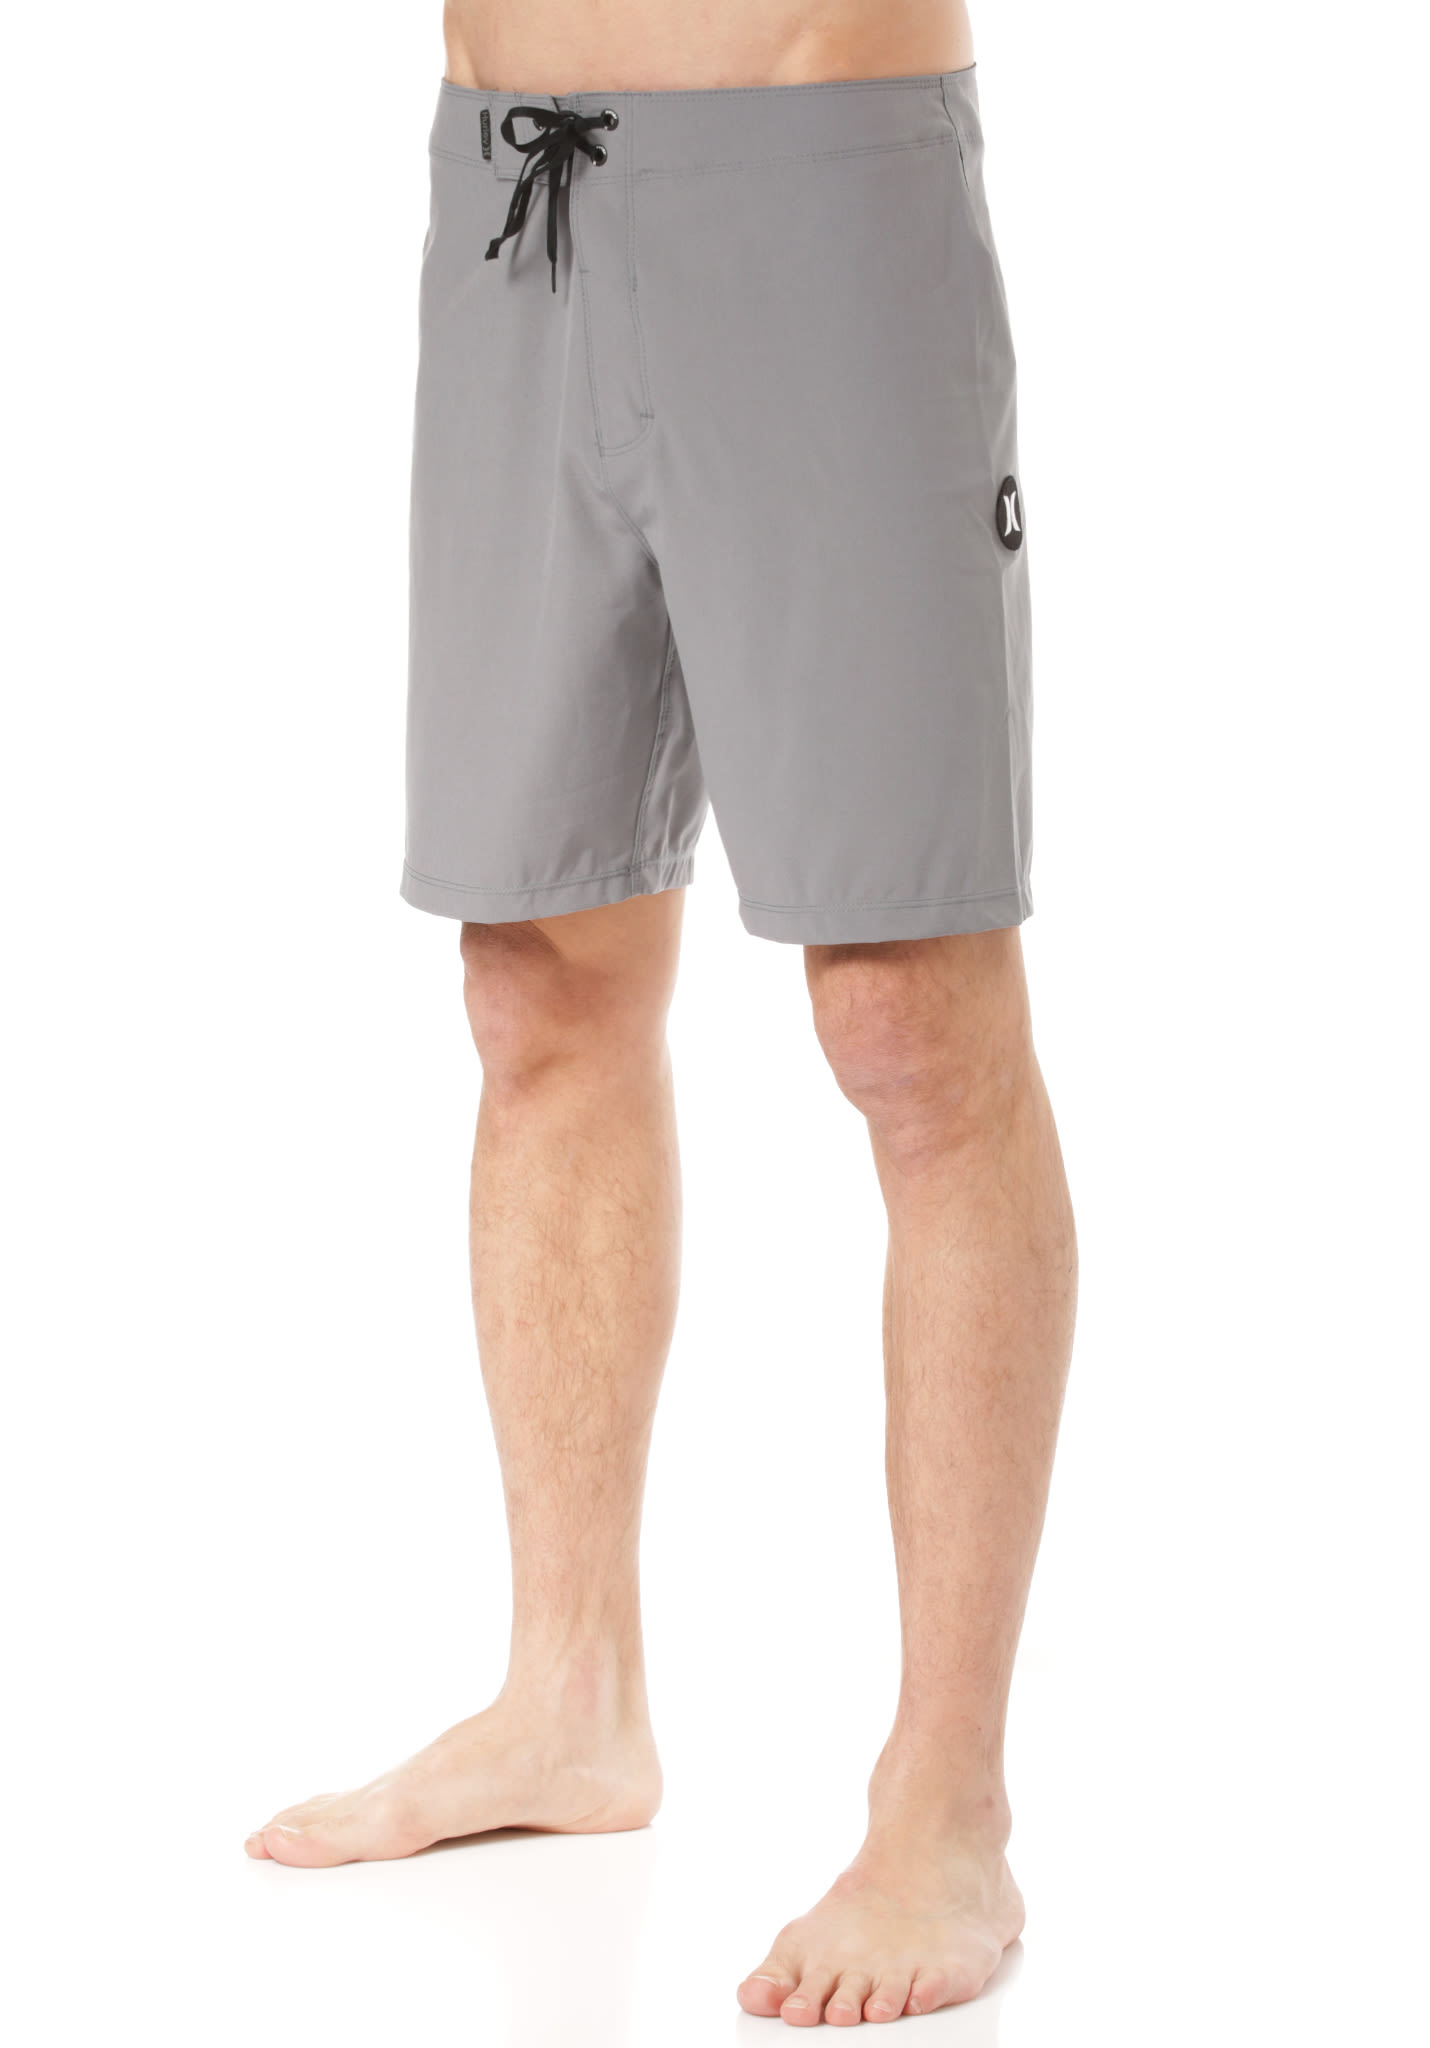 194beeb3725a69 Hurley Phantom One & Only 18' - Boardshorts for Men - Grey - Planet Sports